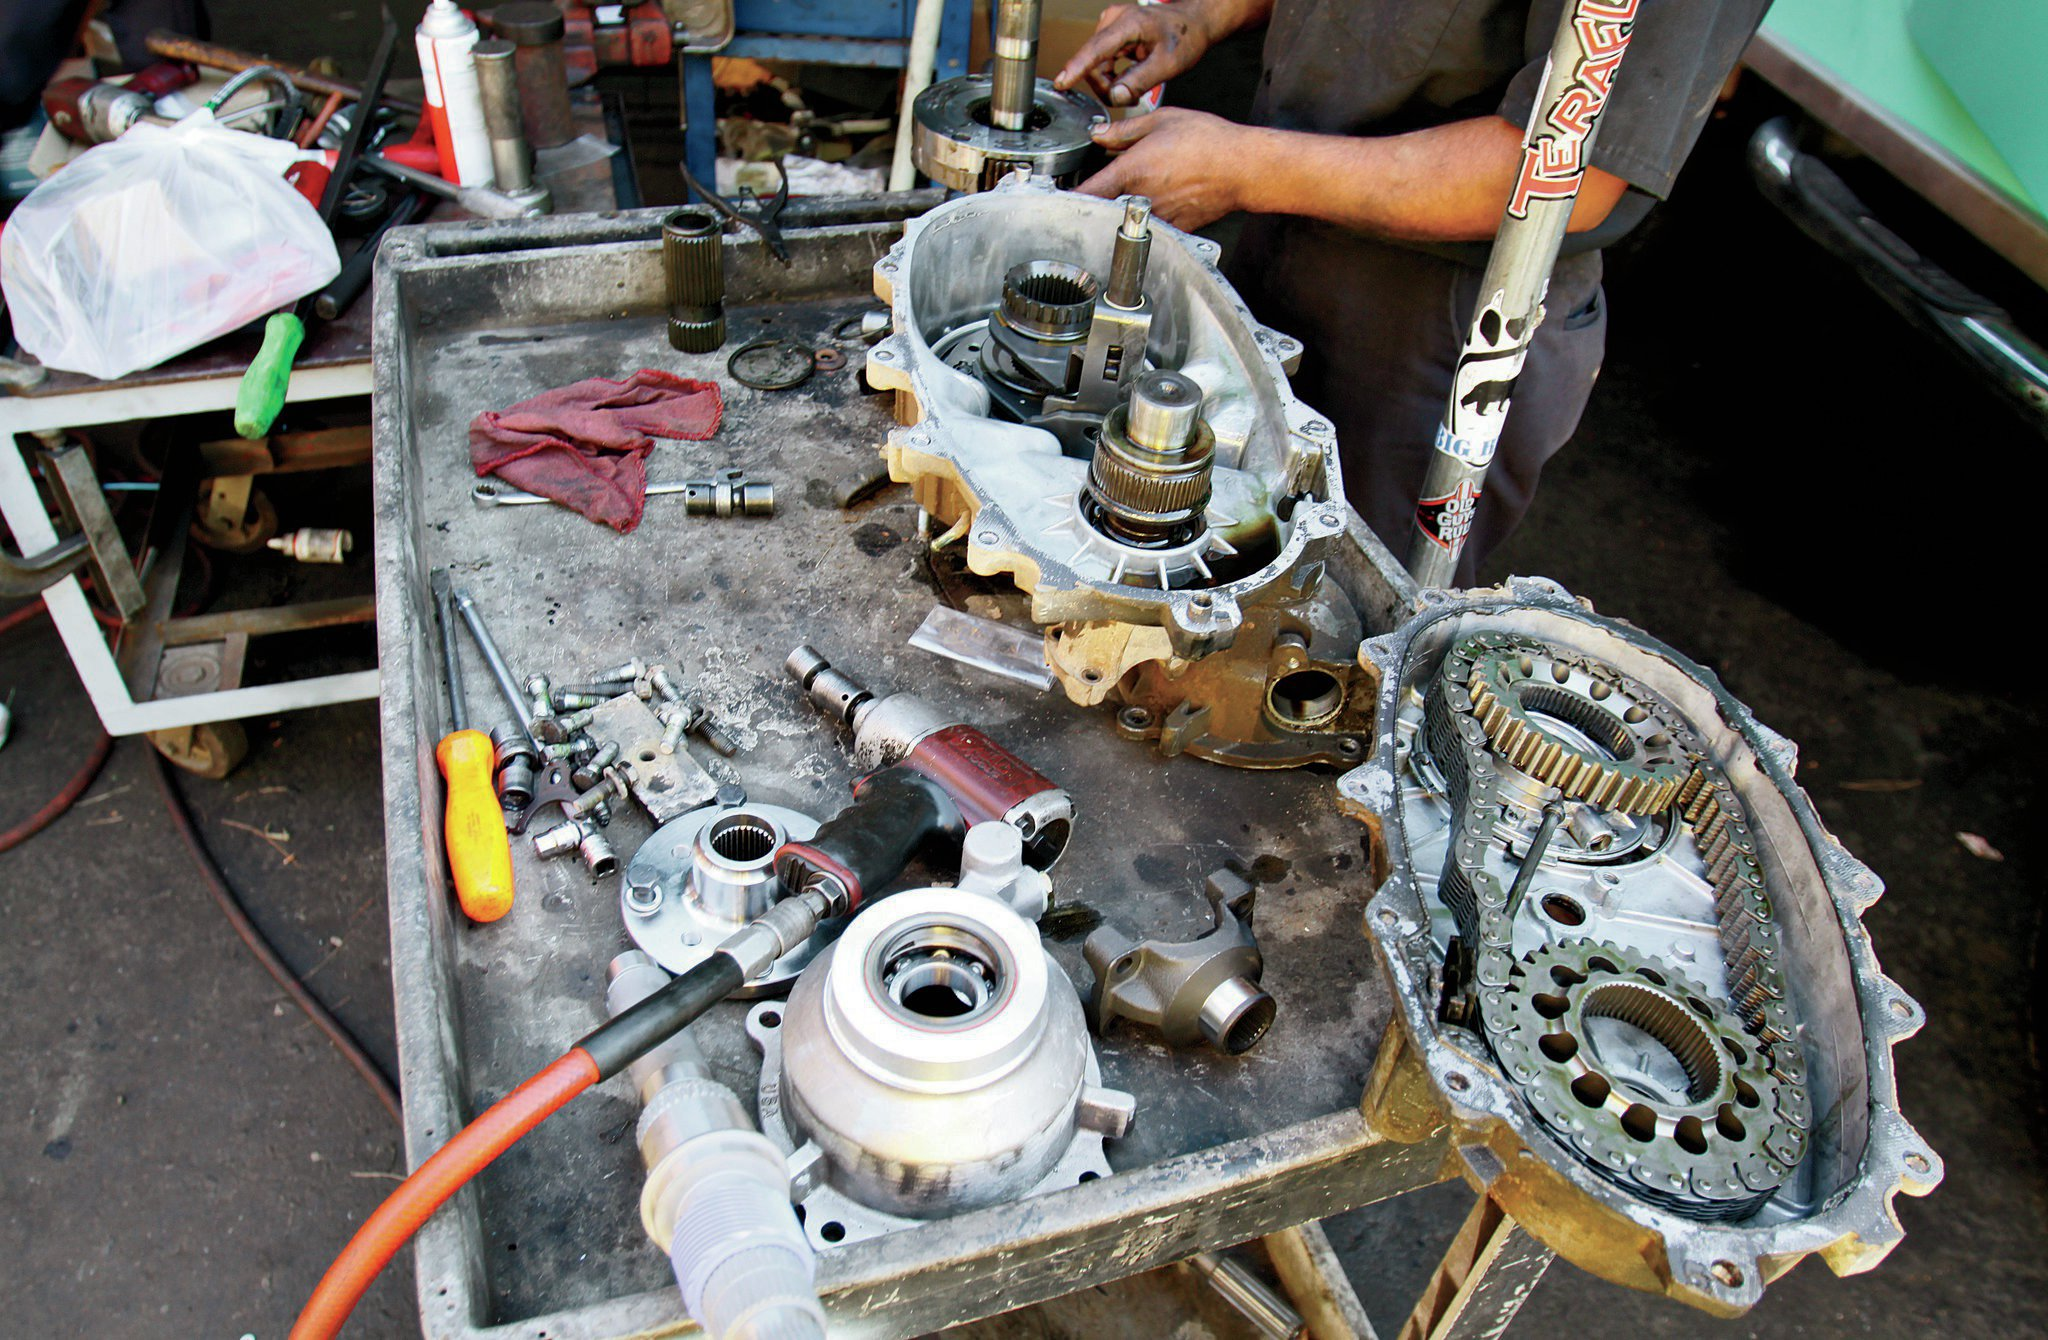 For disassembly of the main case, it is more of the same. Remove all the bolts, and prying as gently as you can, separate the 'case halves. Once you've done that, you can lift the chain and gears straight up off the front and rear output shafts. Then it is time to pull the old mainshaft.